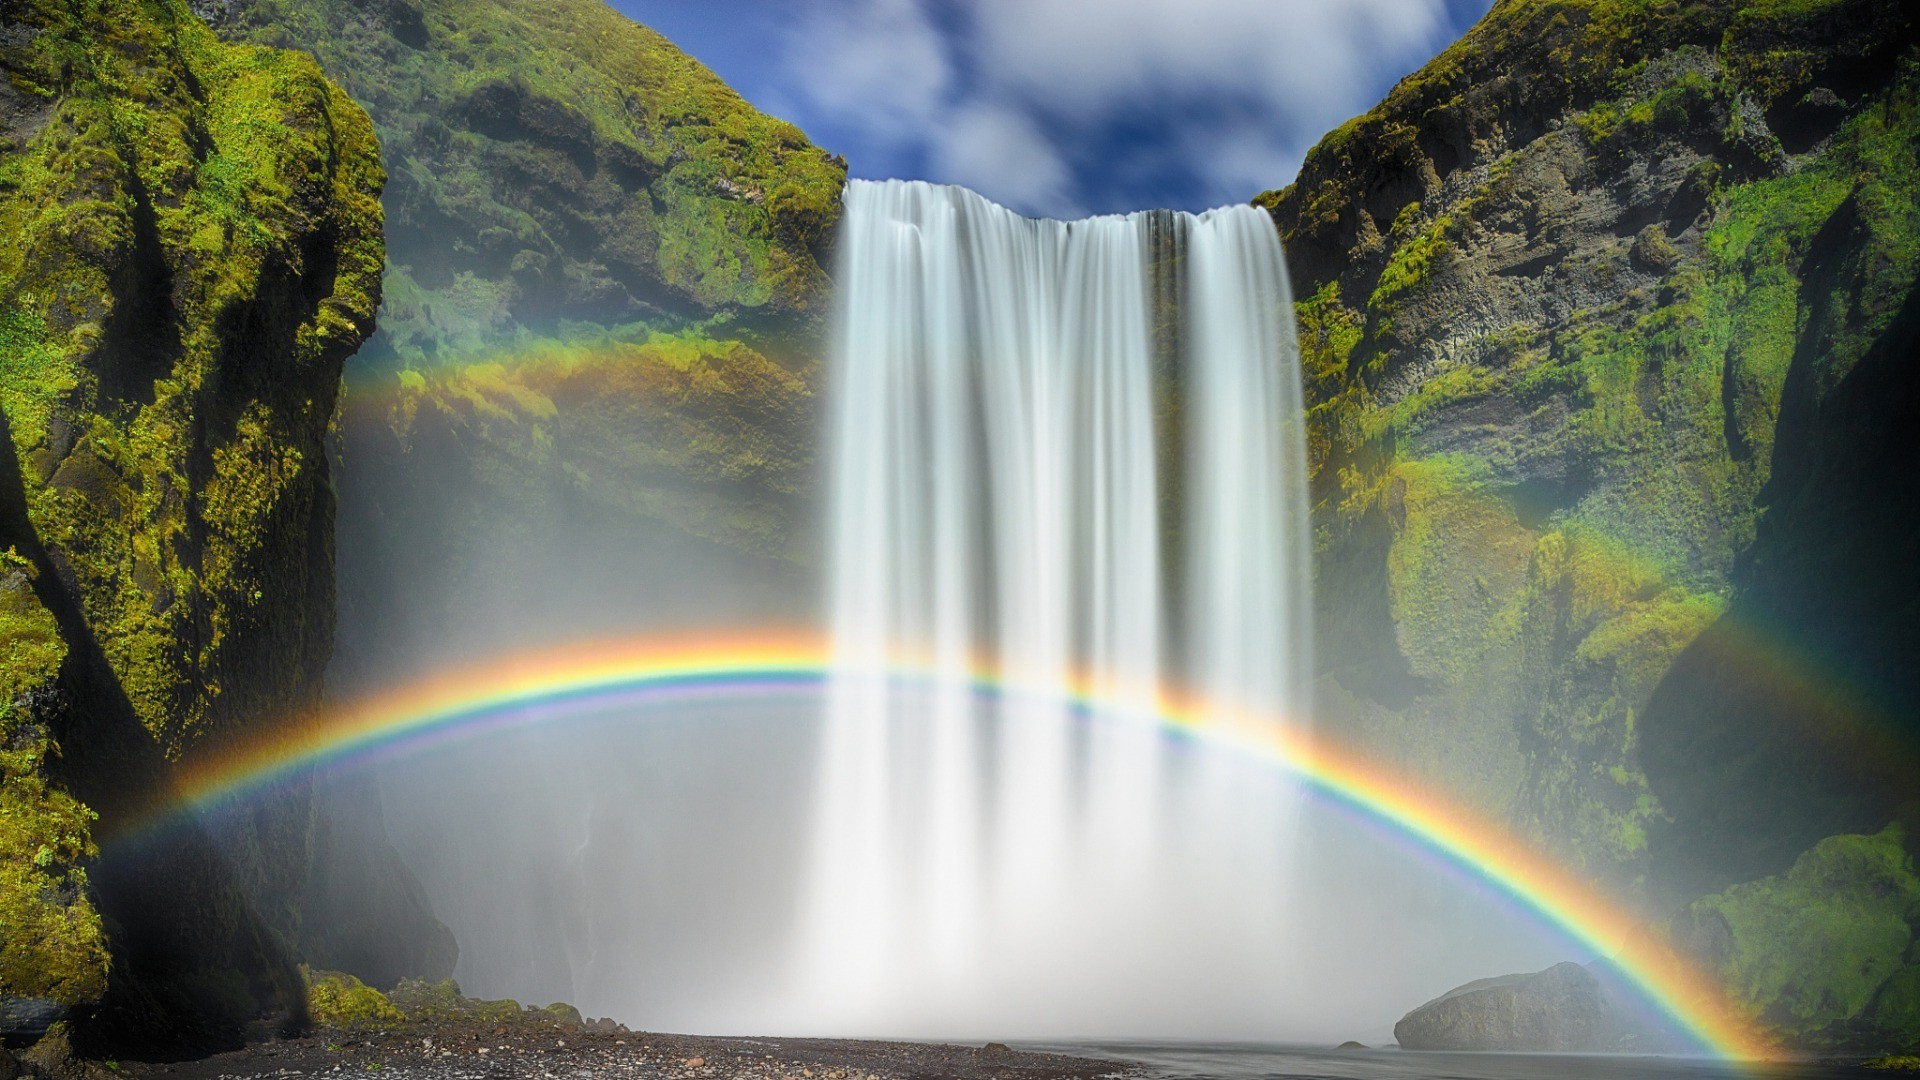 Free Animated Fall Wallpaper Nature Waterfall Rainbows Moss Long Exposure Iceland